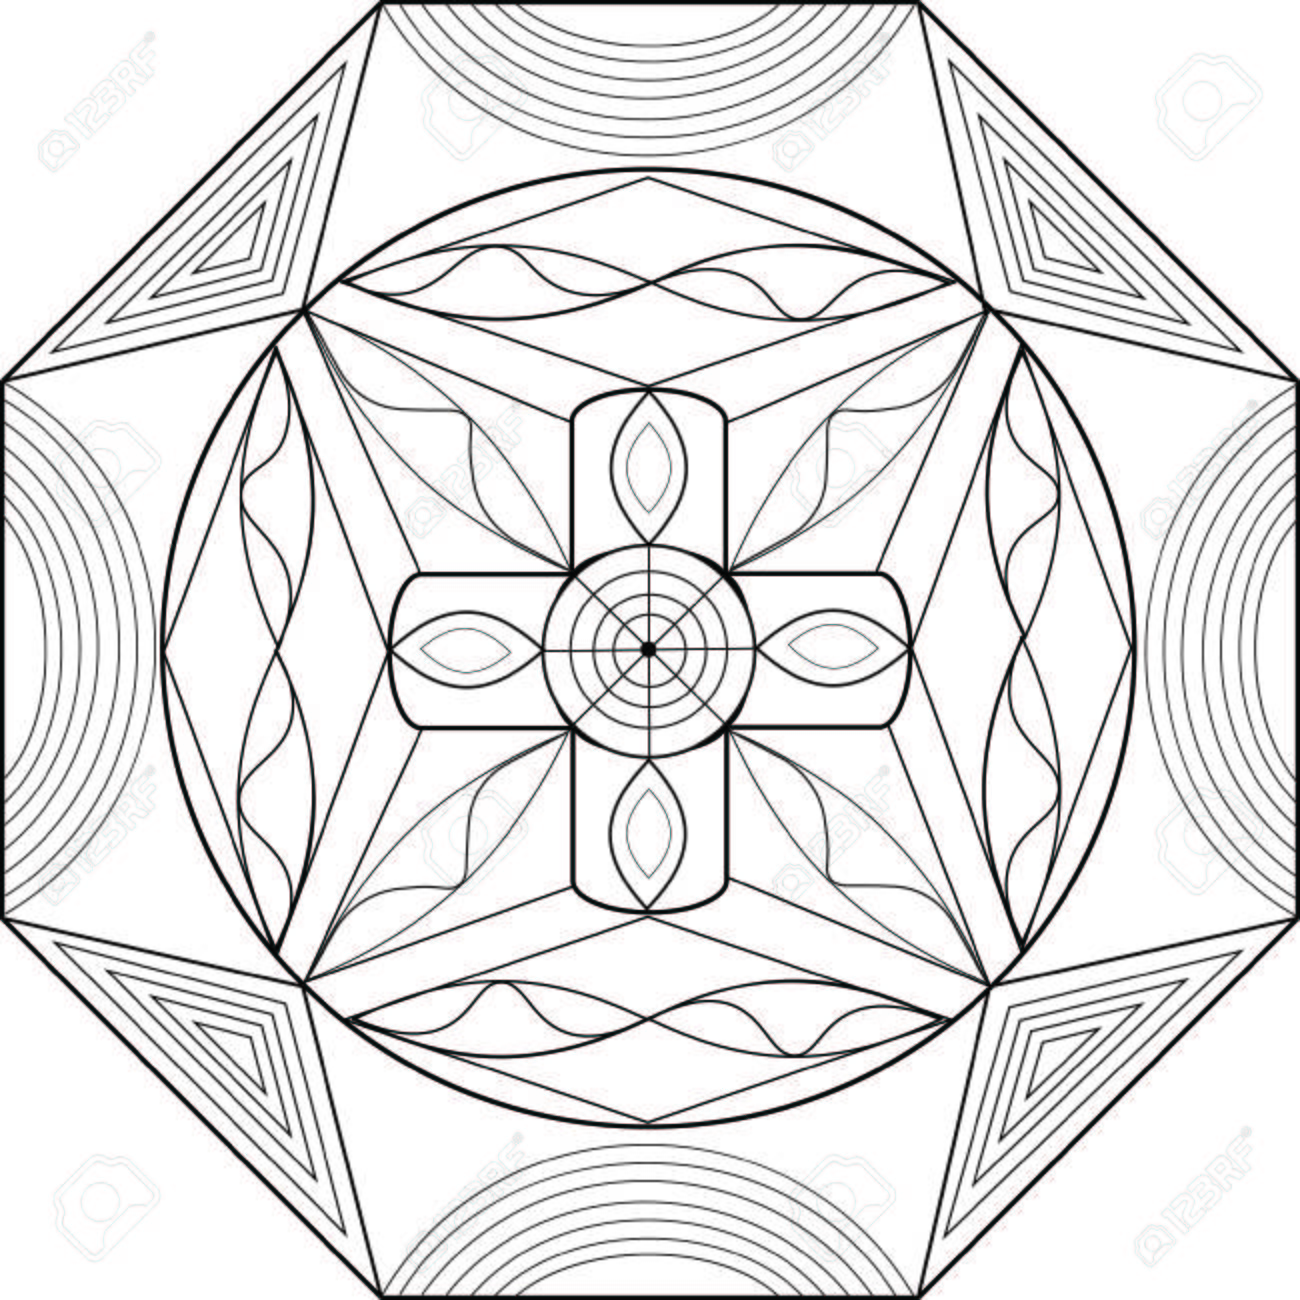 Geometric Illustration And With Patterns Visual Effects For Coloring Books Stock Vector